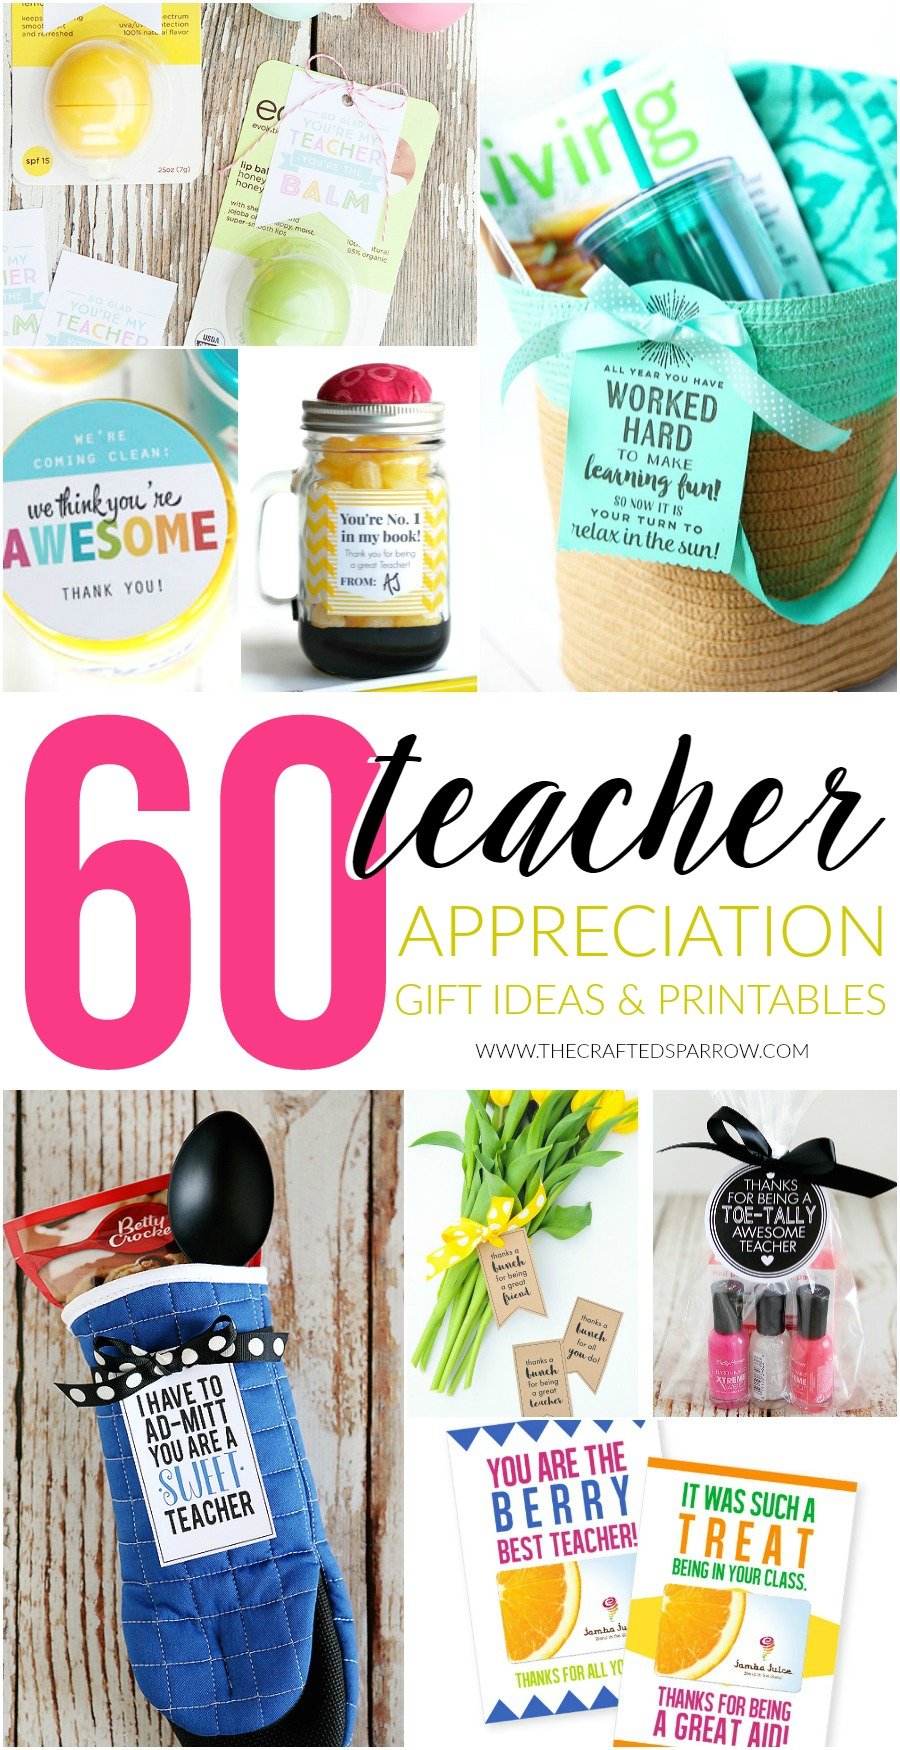 photograph relating to Extra Gum Teacher Appreciation Printable named 60 Trainer Appreciation Present Strategies Printables